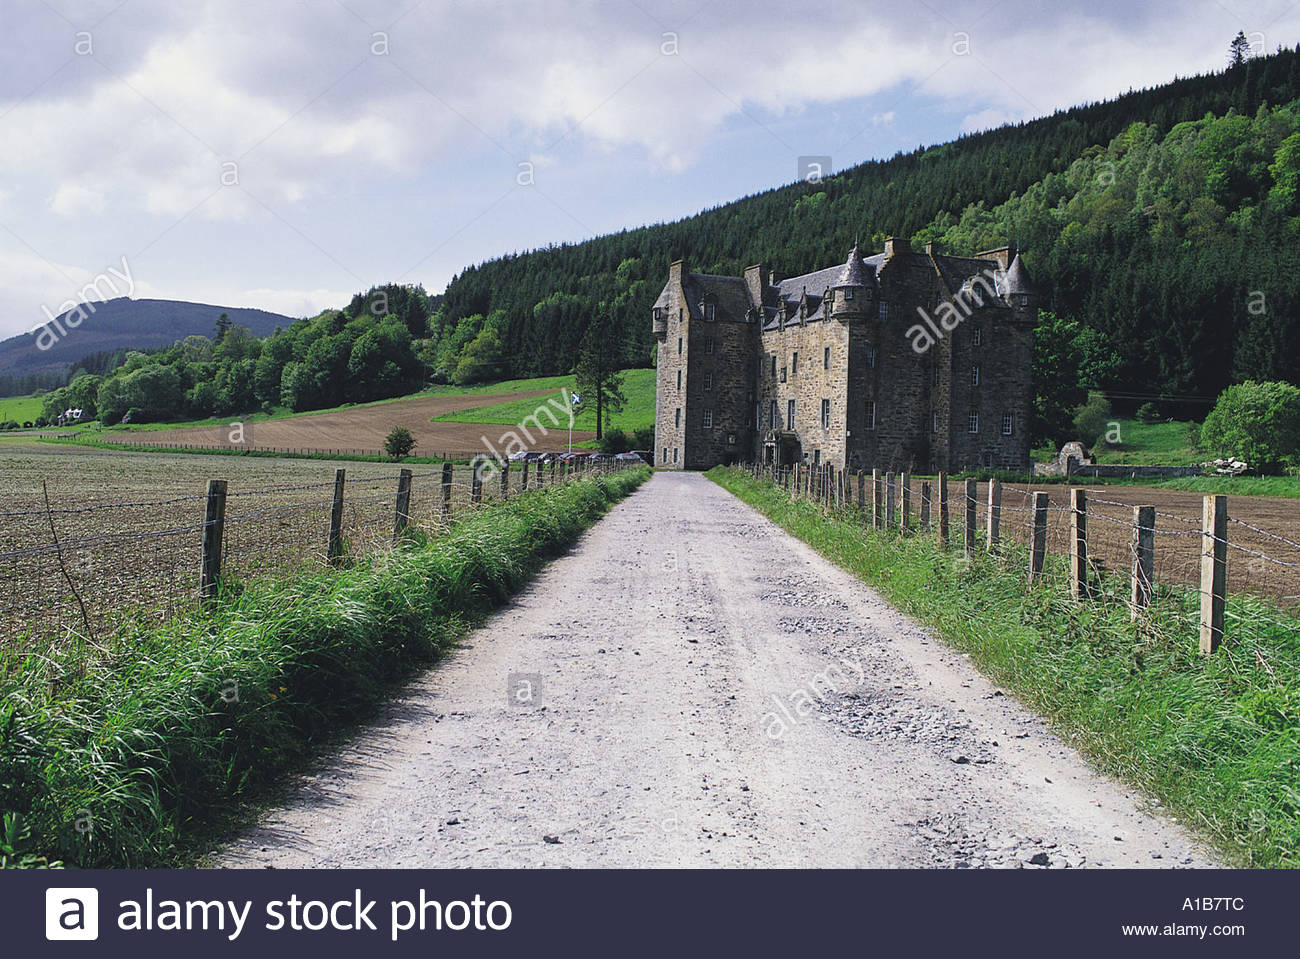 LOOKING ALONG THE DRIVEWAY TO THE IMPOSING EDIFICE OF CASTLE MENZIES ABERFELDY PERTHSHIRE - Stock Image